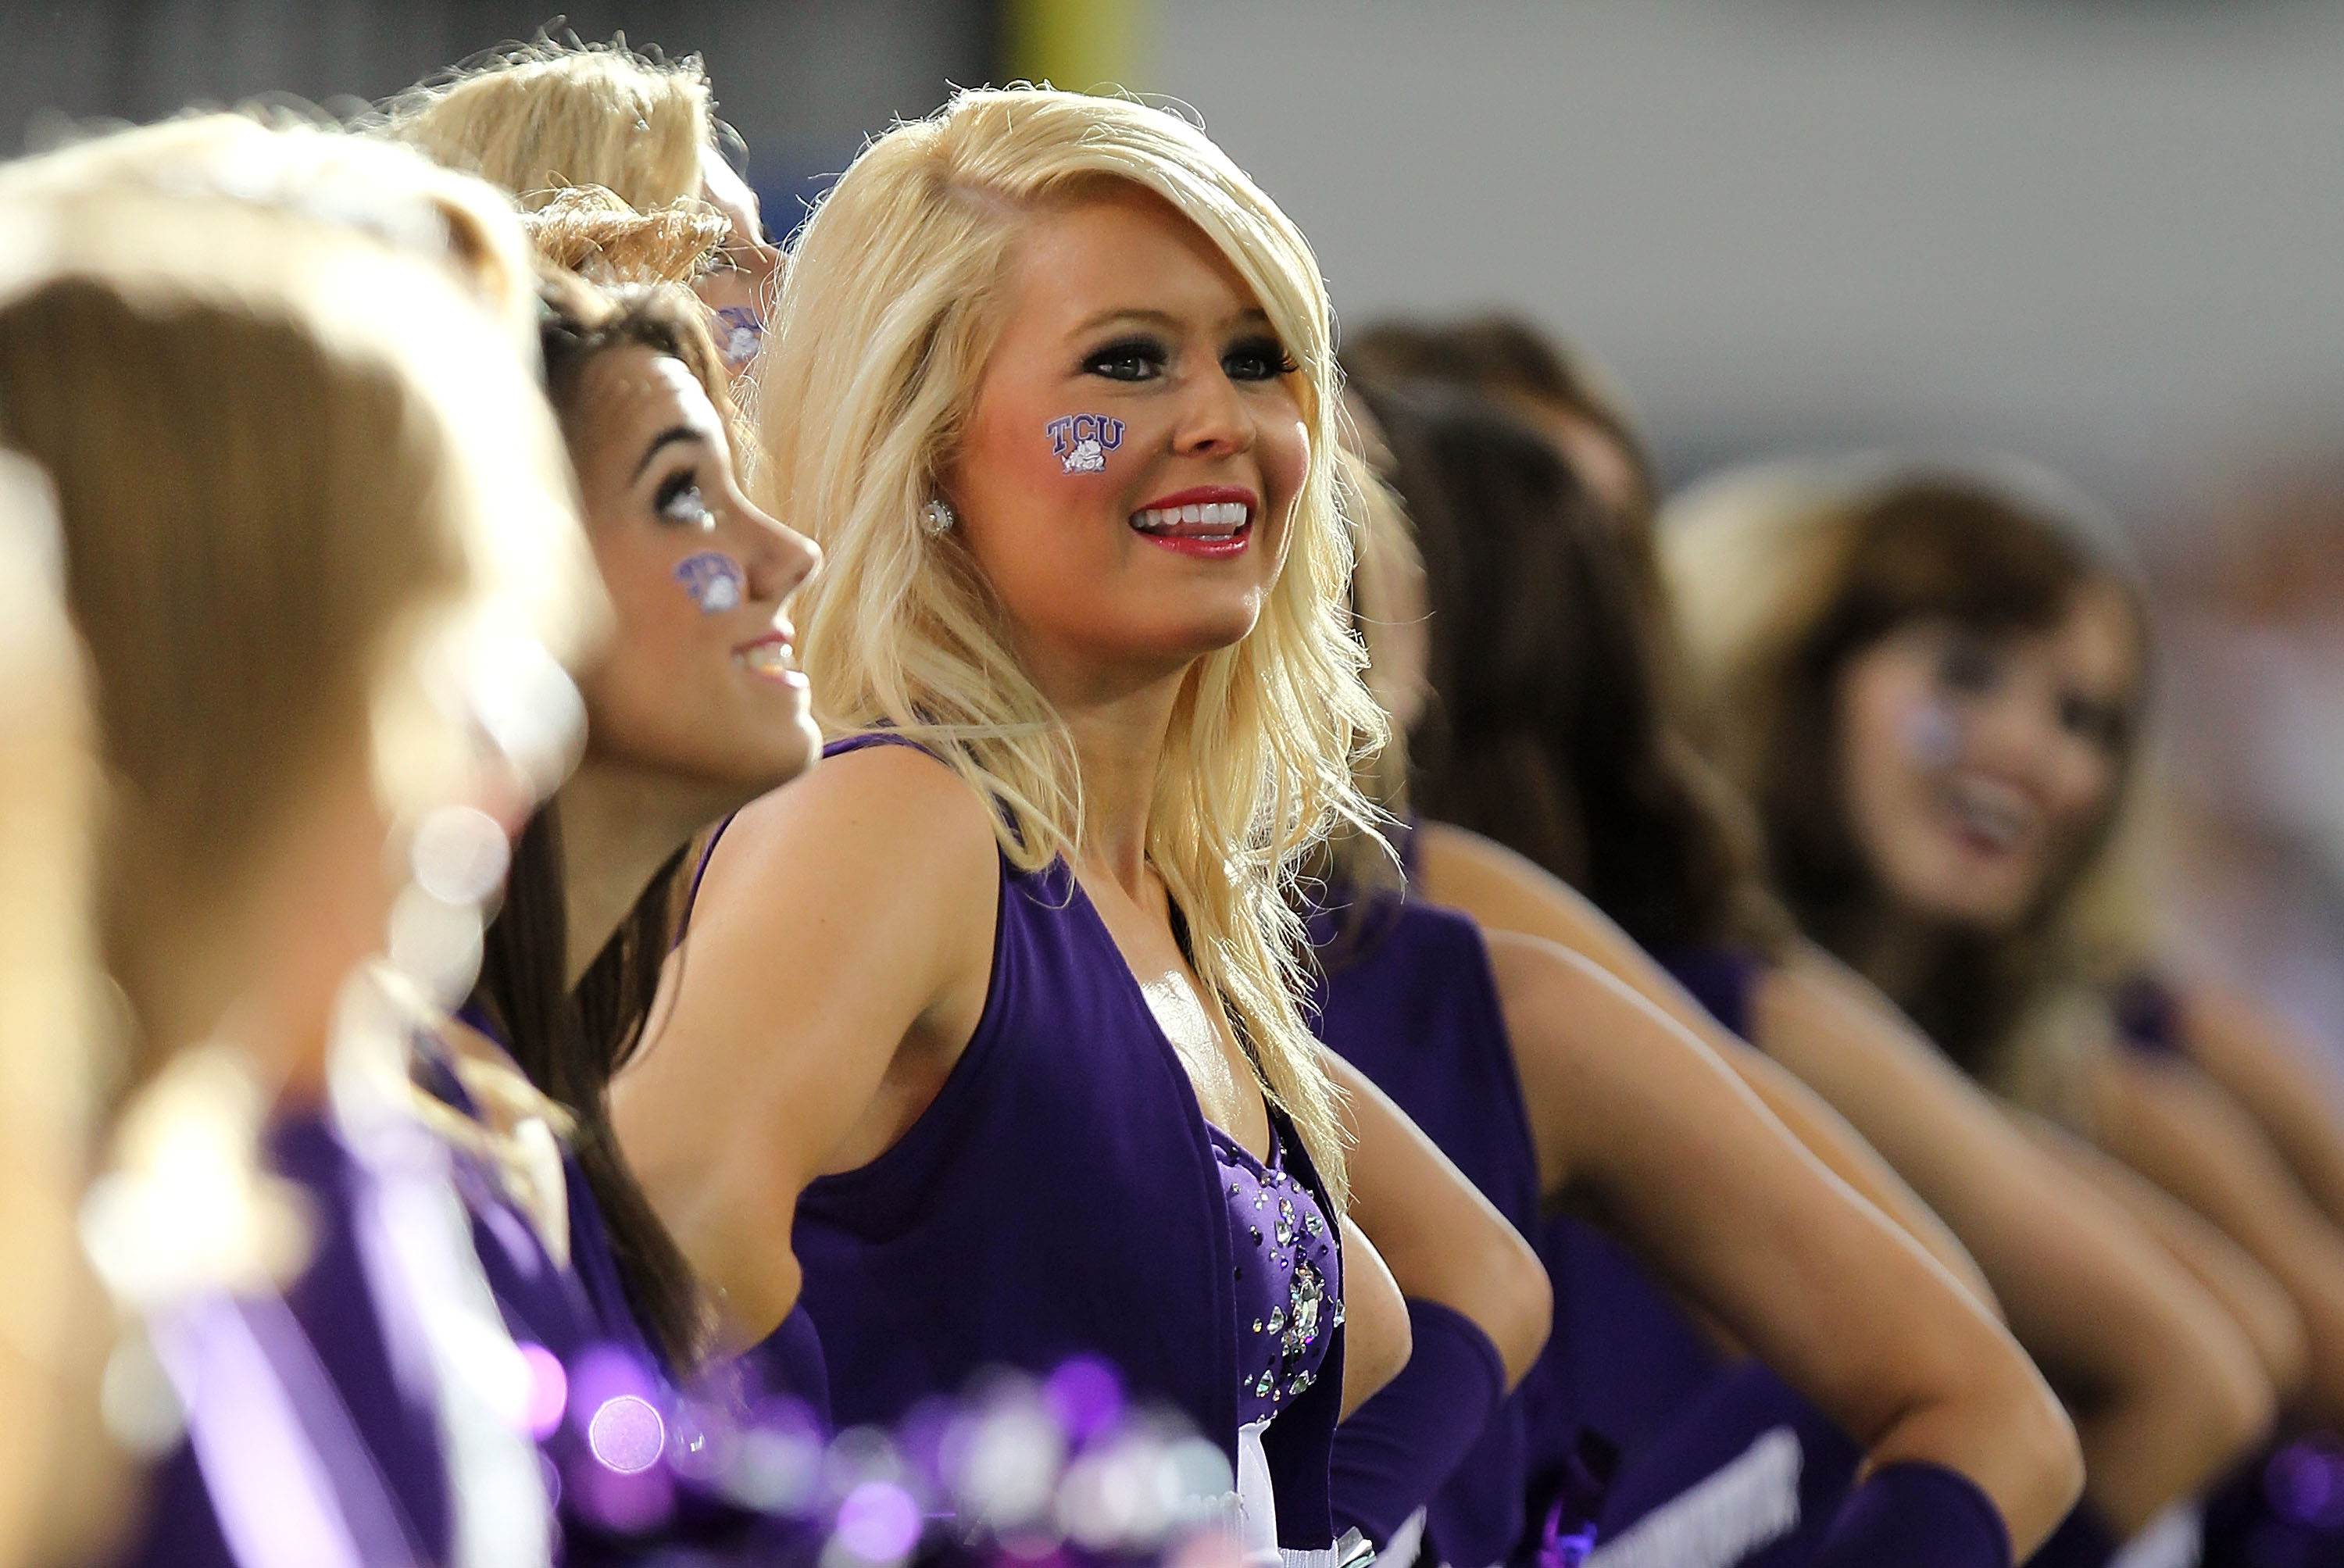 ARLINGTON, TX - SEPTEMBER 04:  A TCU Horned Frogs cheerleader during a game against the Oregon State Beavers at Cowboys Stadium on September 4, 2010 in Arlington, Texas.  (Photo by Ronald Martinez/Getty Images)